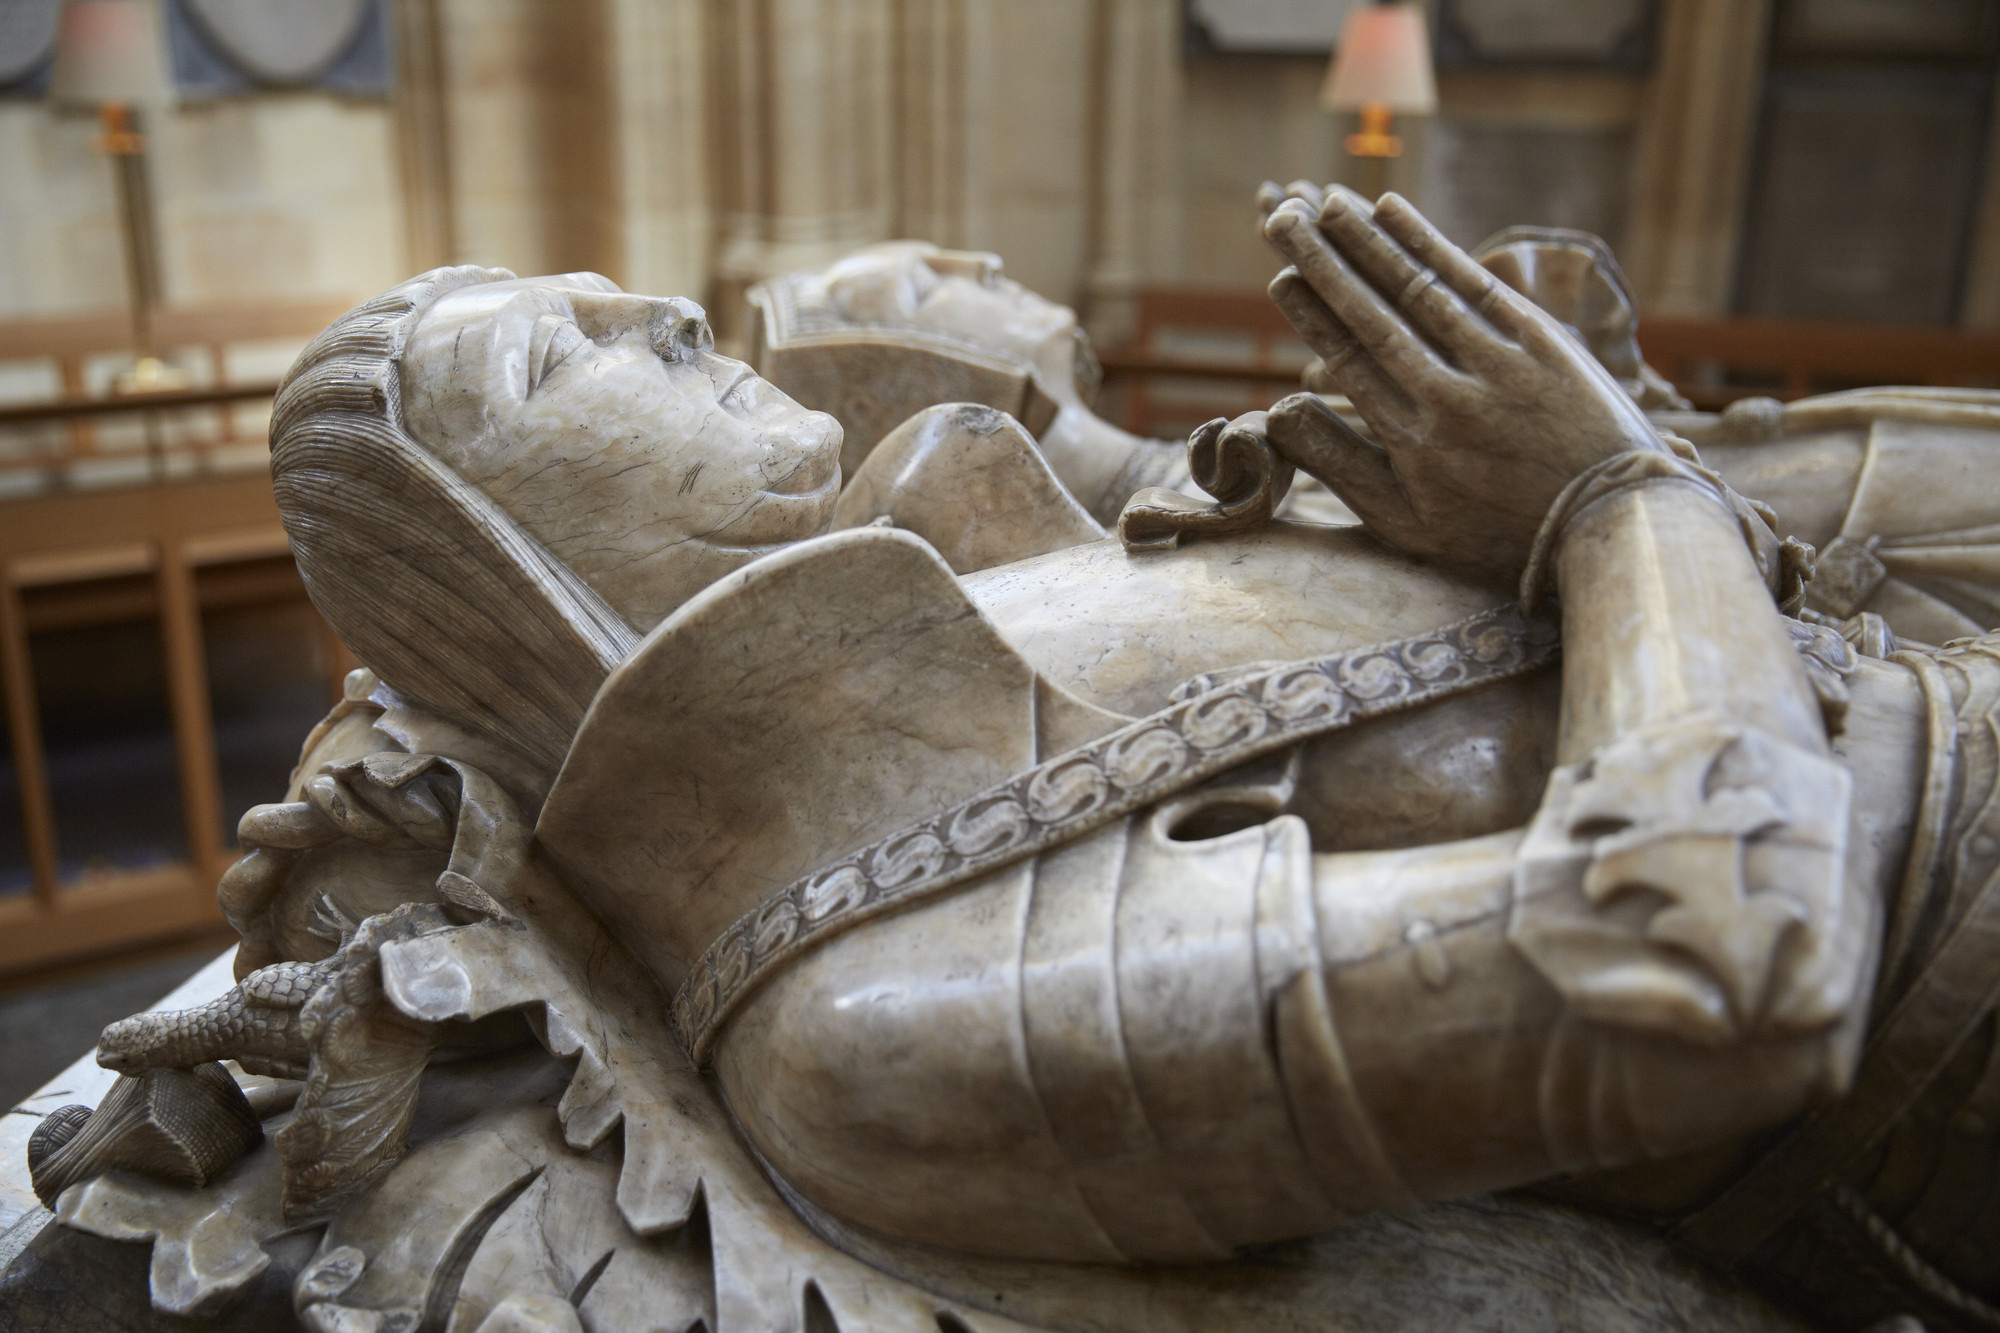 A tomb in the Rutland Chapel. Royal Collection Trust/© Her Majesty Queen Elizabeth II 2018